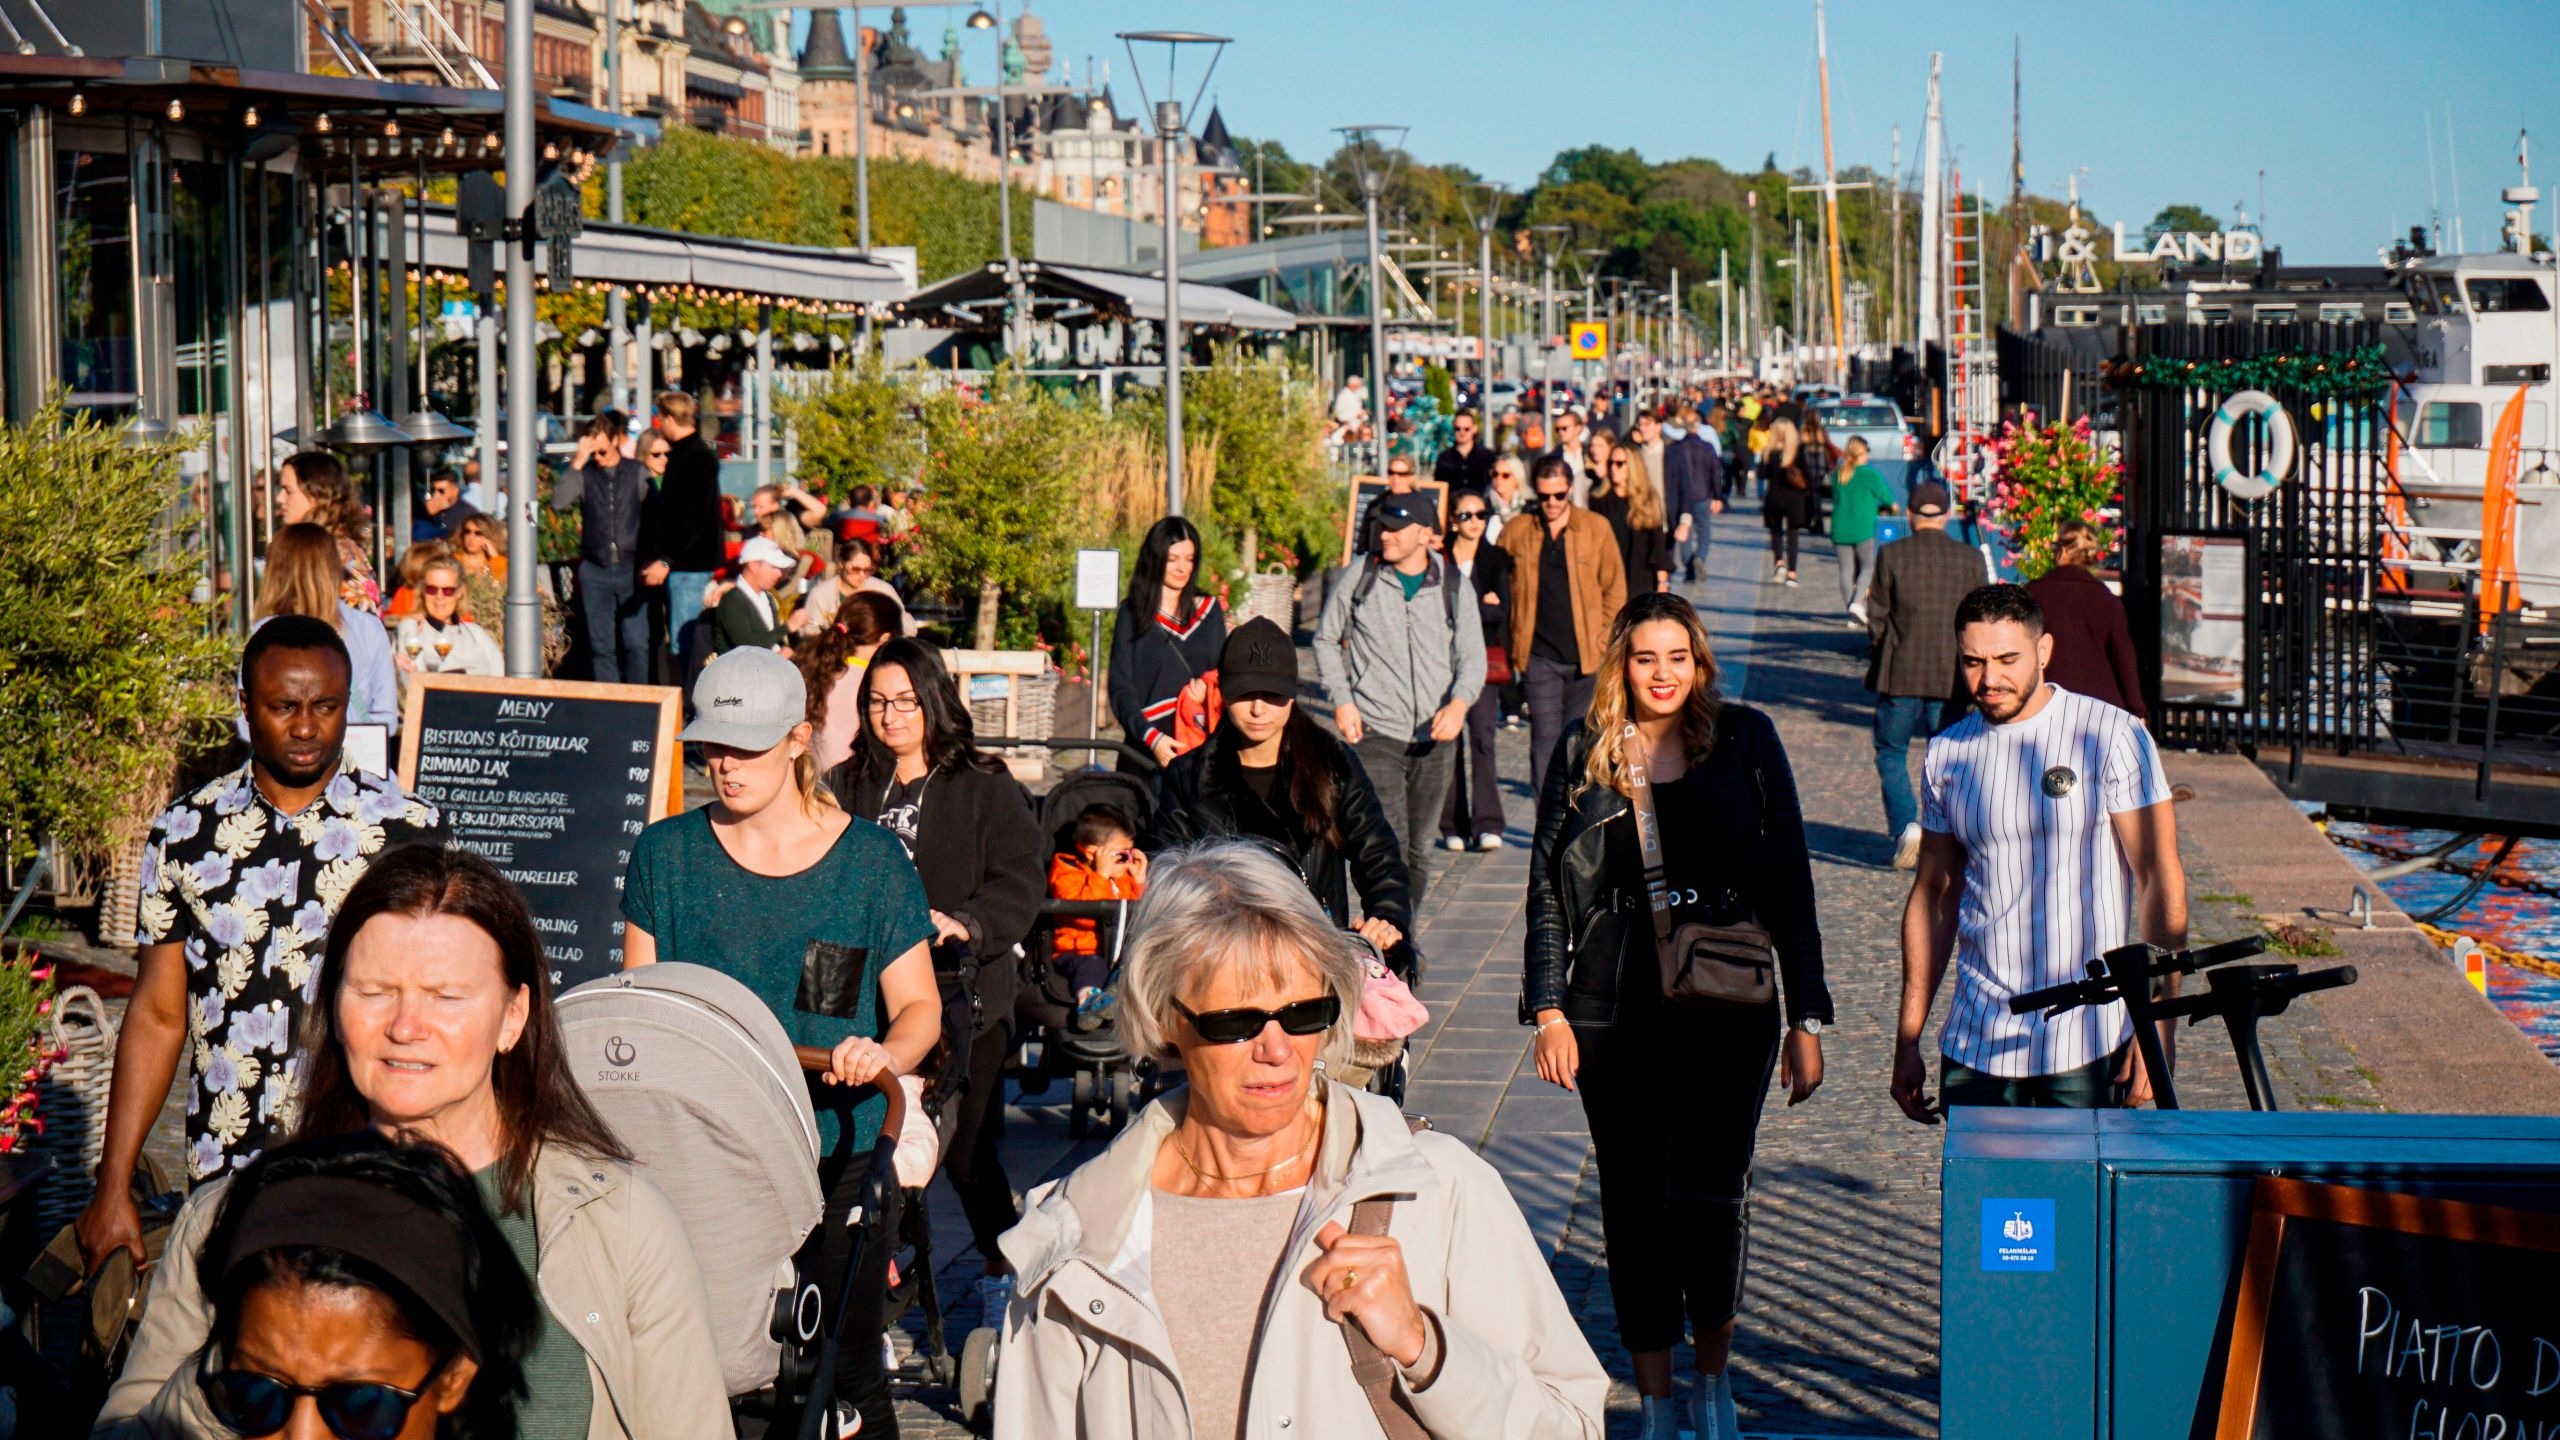 People walk on Stranvagen in Stockholm on Sept. 19, 2020, during the novel coronavirus COVID-19 pandemic. (Jonathan NACKSTRAND/AFP via Getty Images)